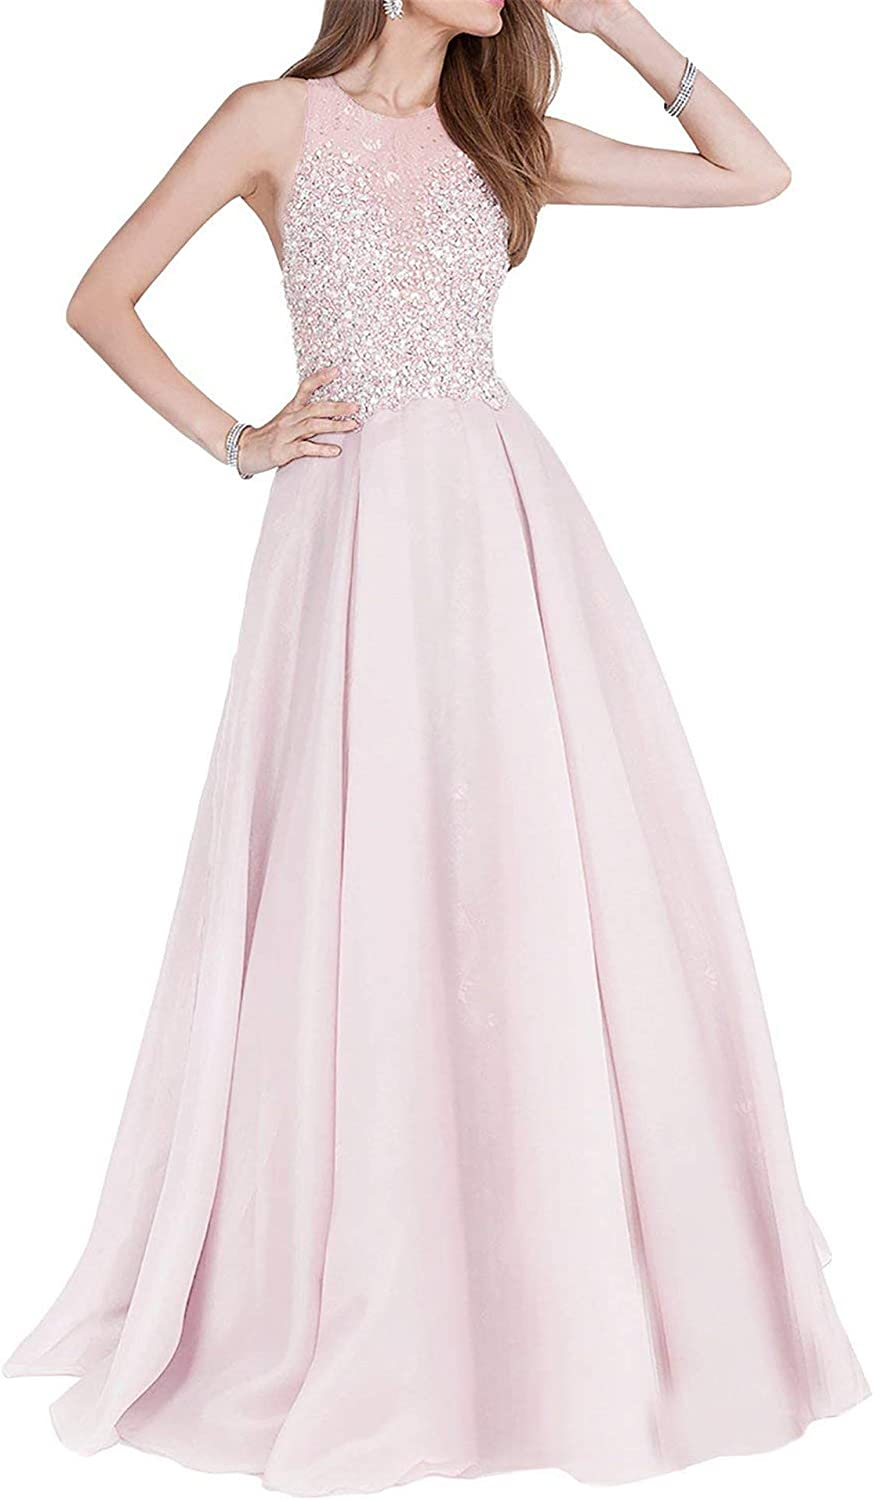 Falydal Women's Halter Beaded Prom Dress Long A Line Evening Gowns